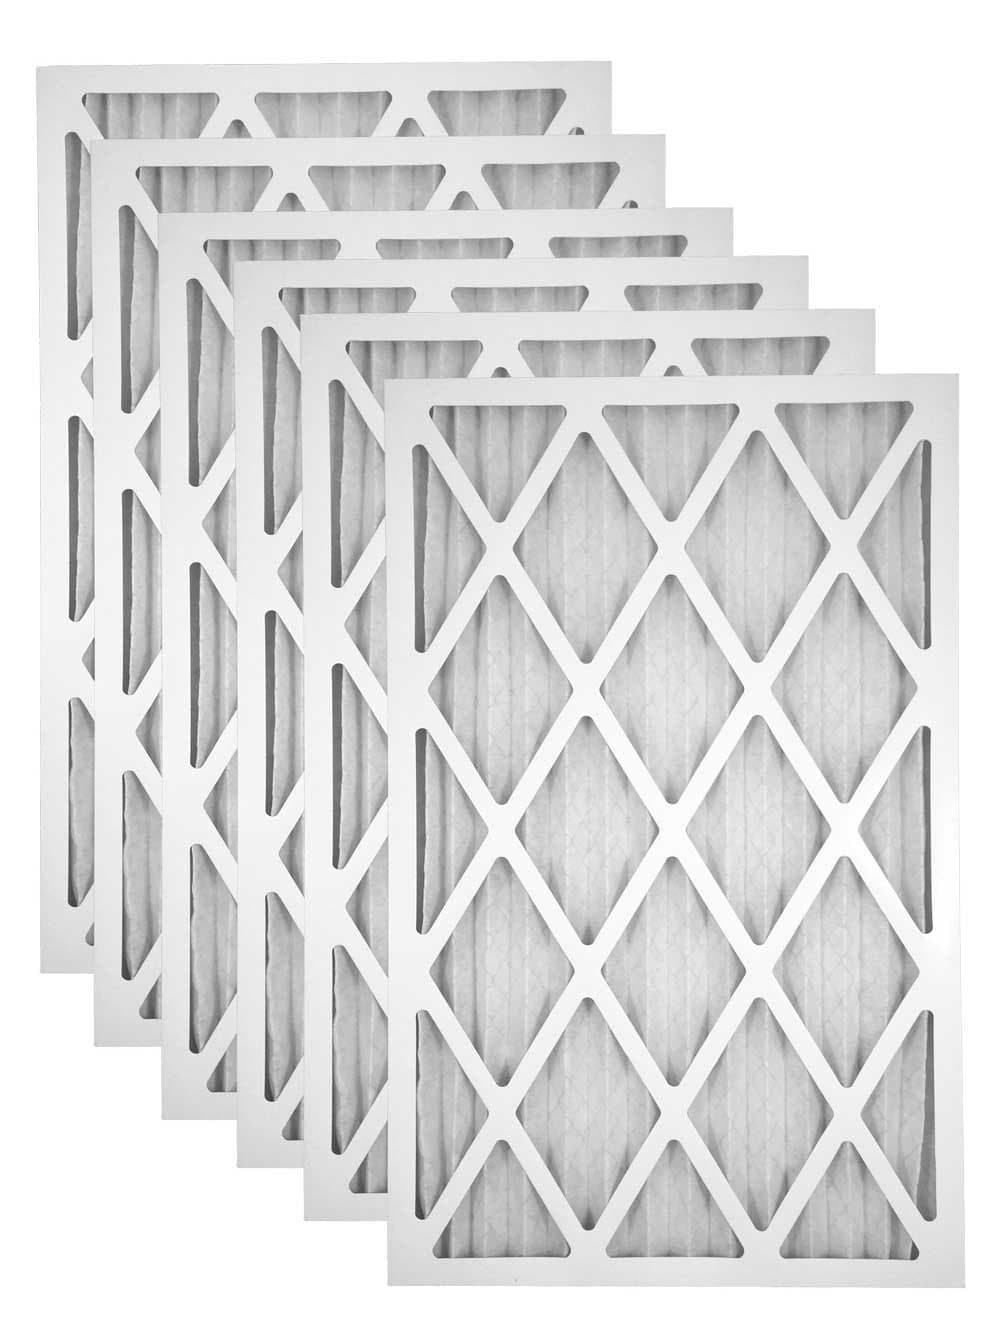 18x24x1 Merv 13 Pleated AC Furnace Filter - Case of 6 by Atomic Filters